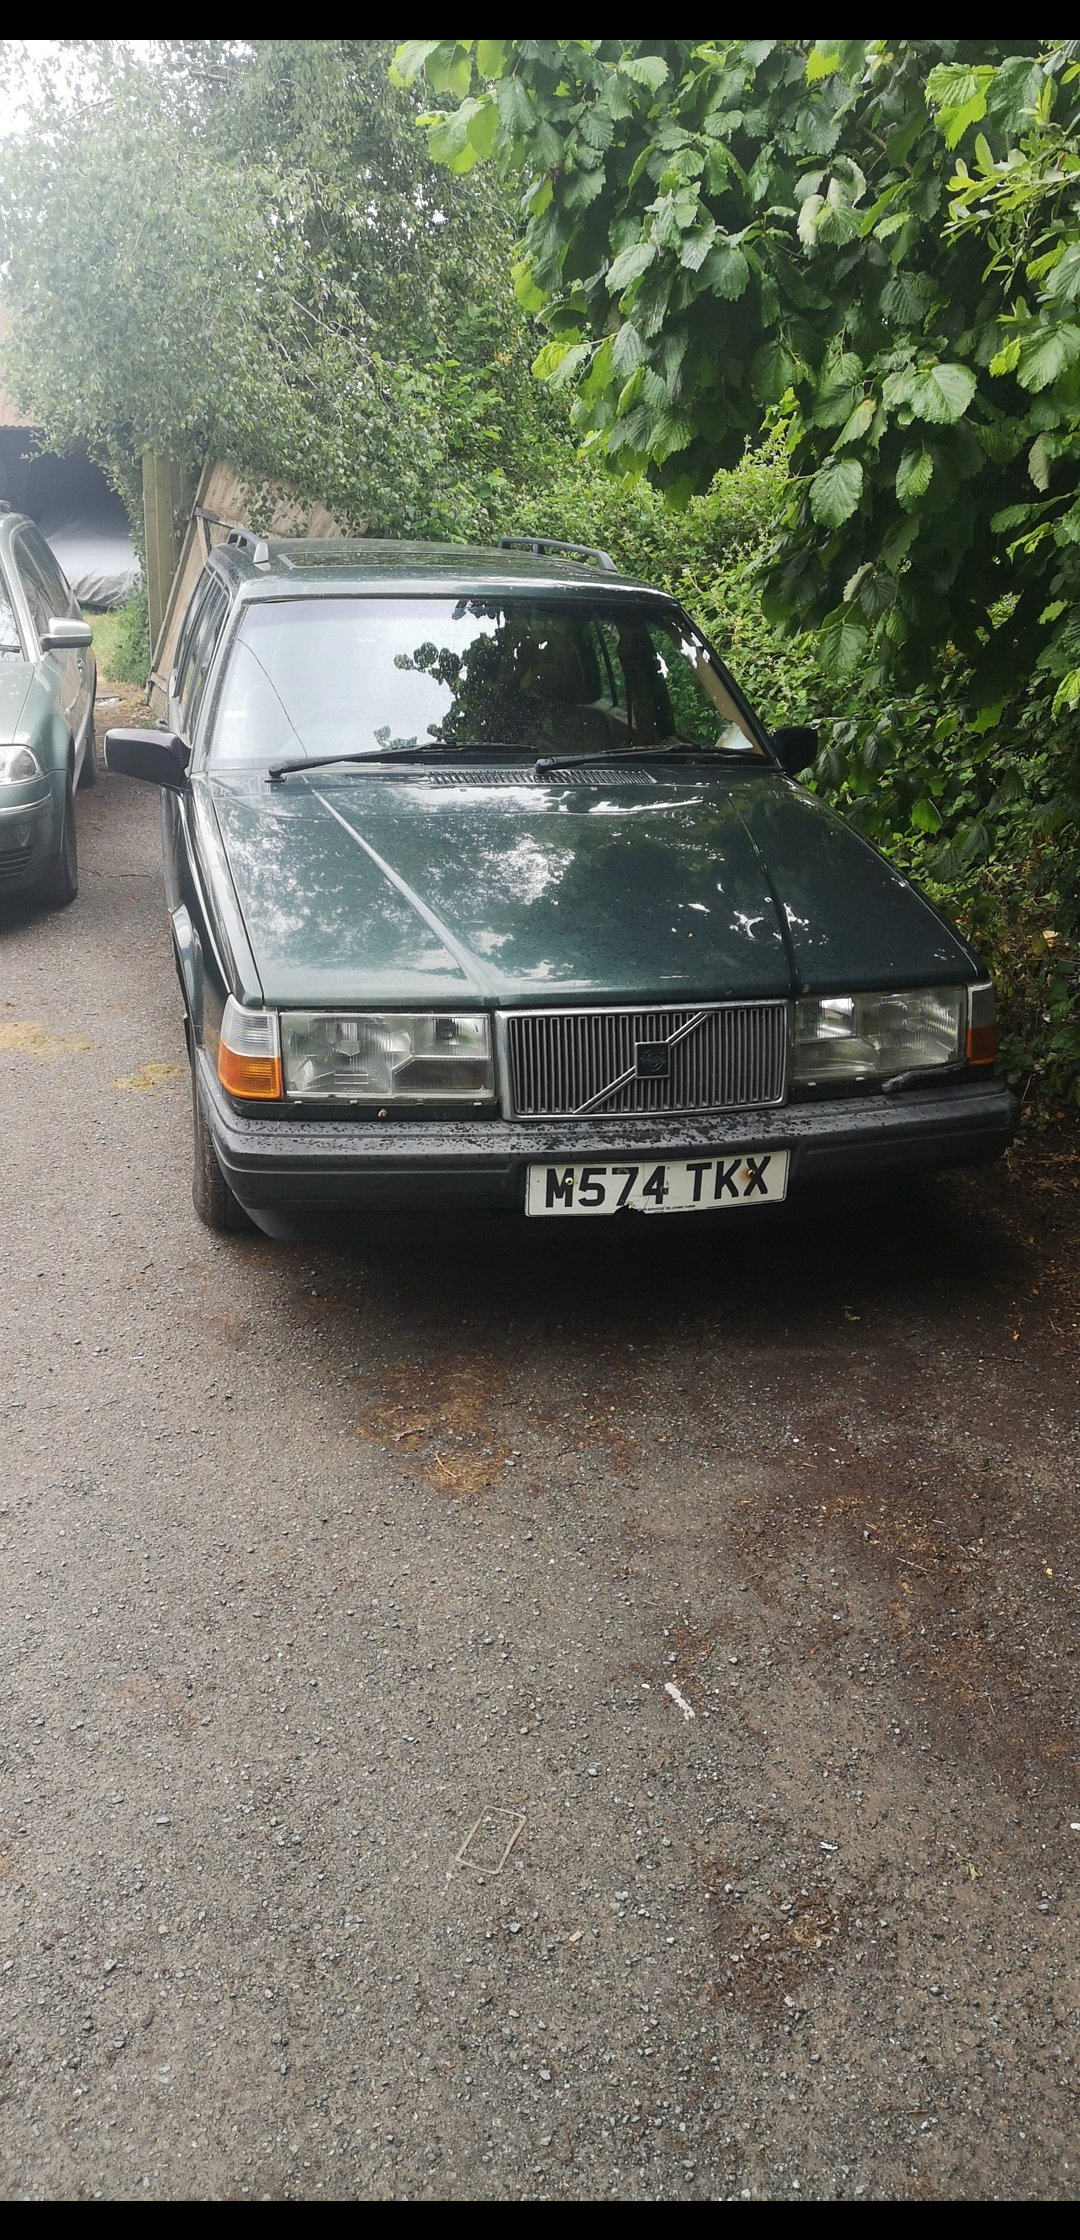 1995 volvo 940 turbo running project For Sale (picture 2 of 4)